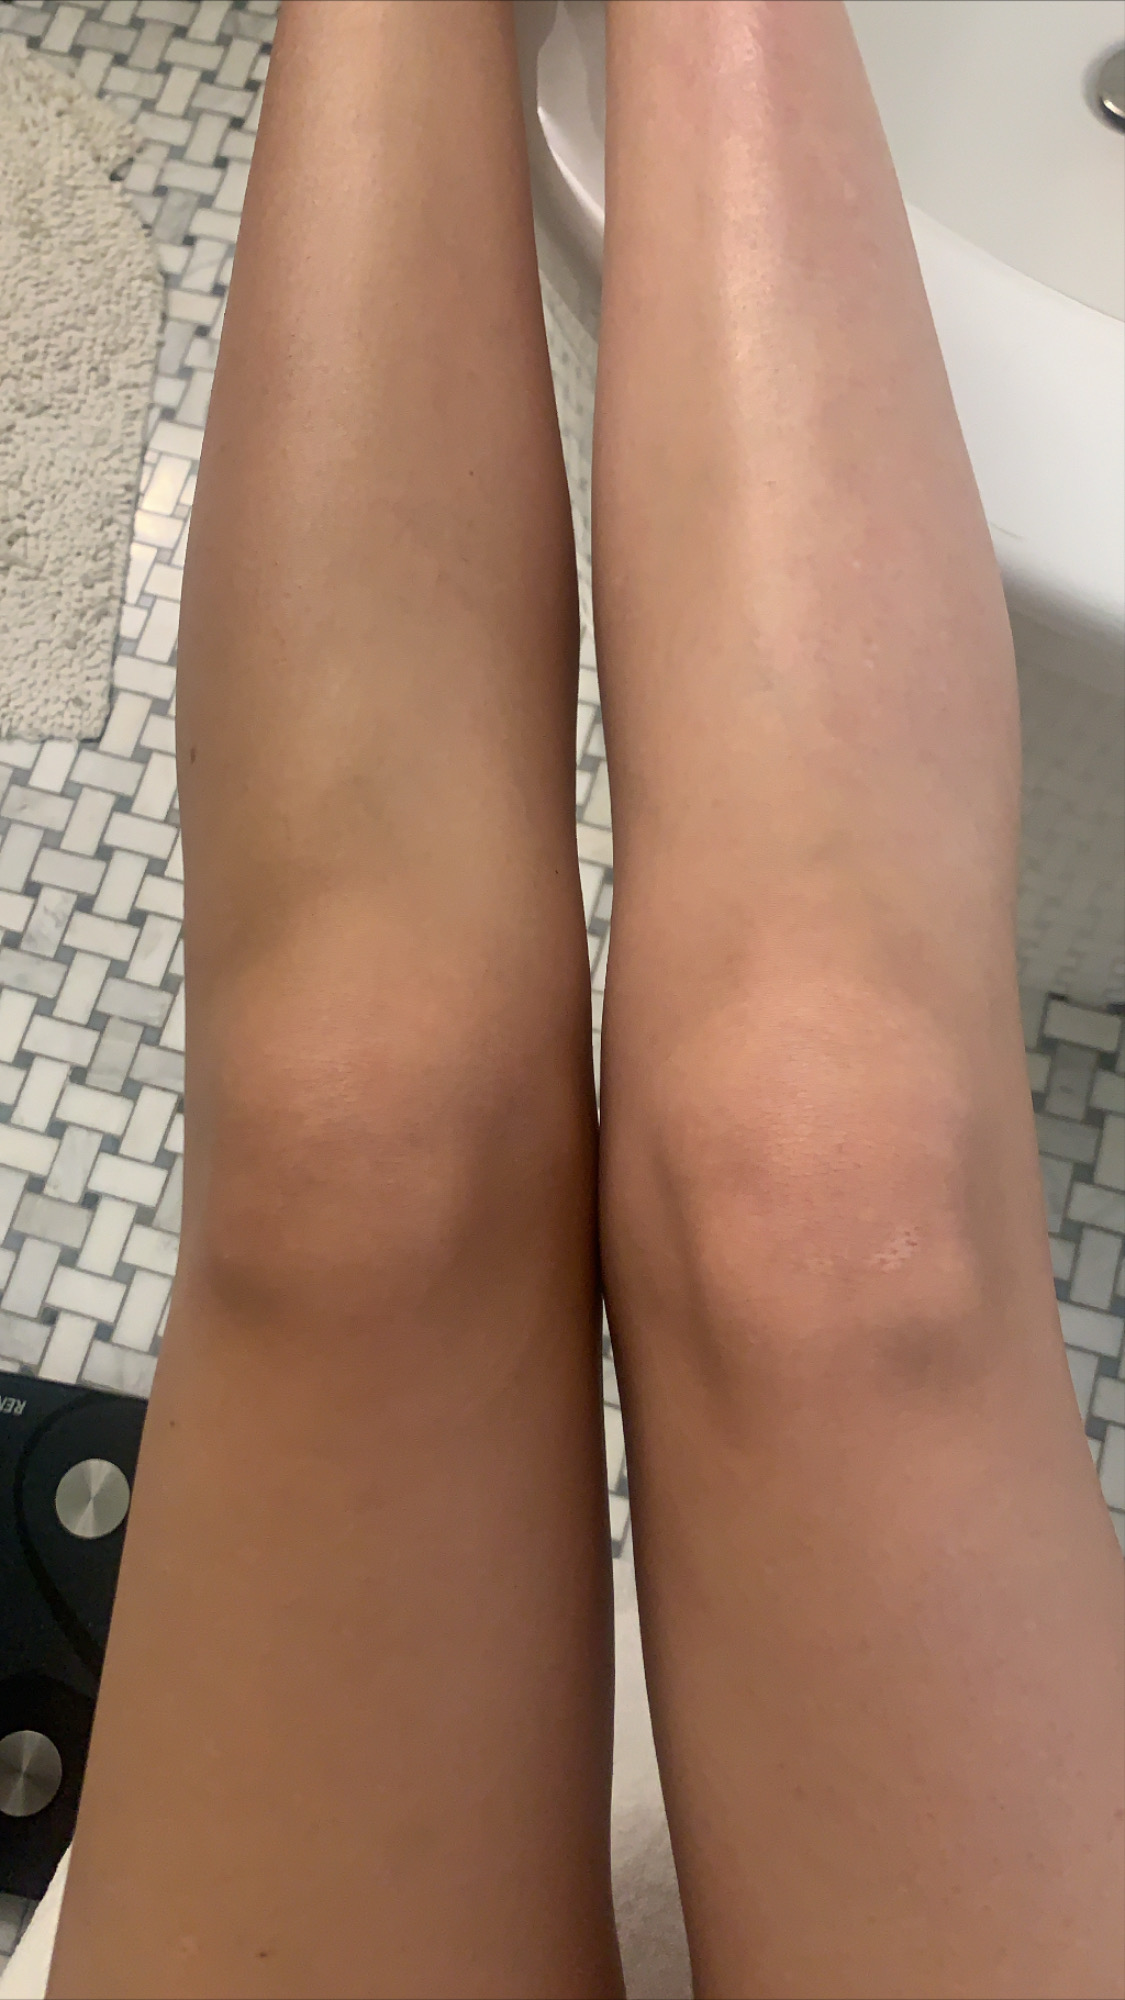 before and after self-tanner routine